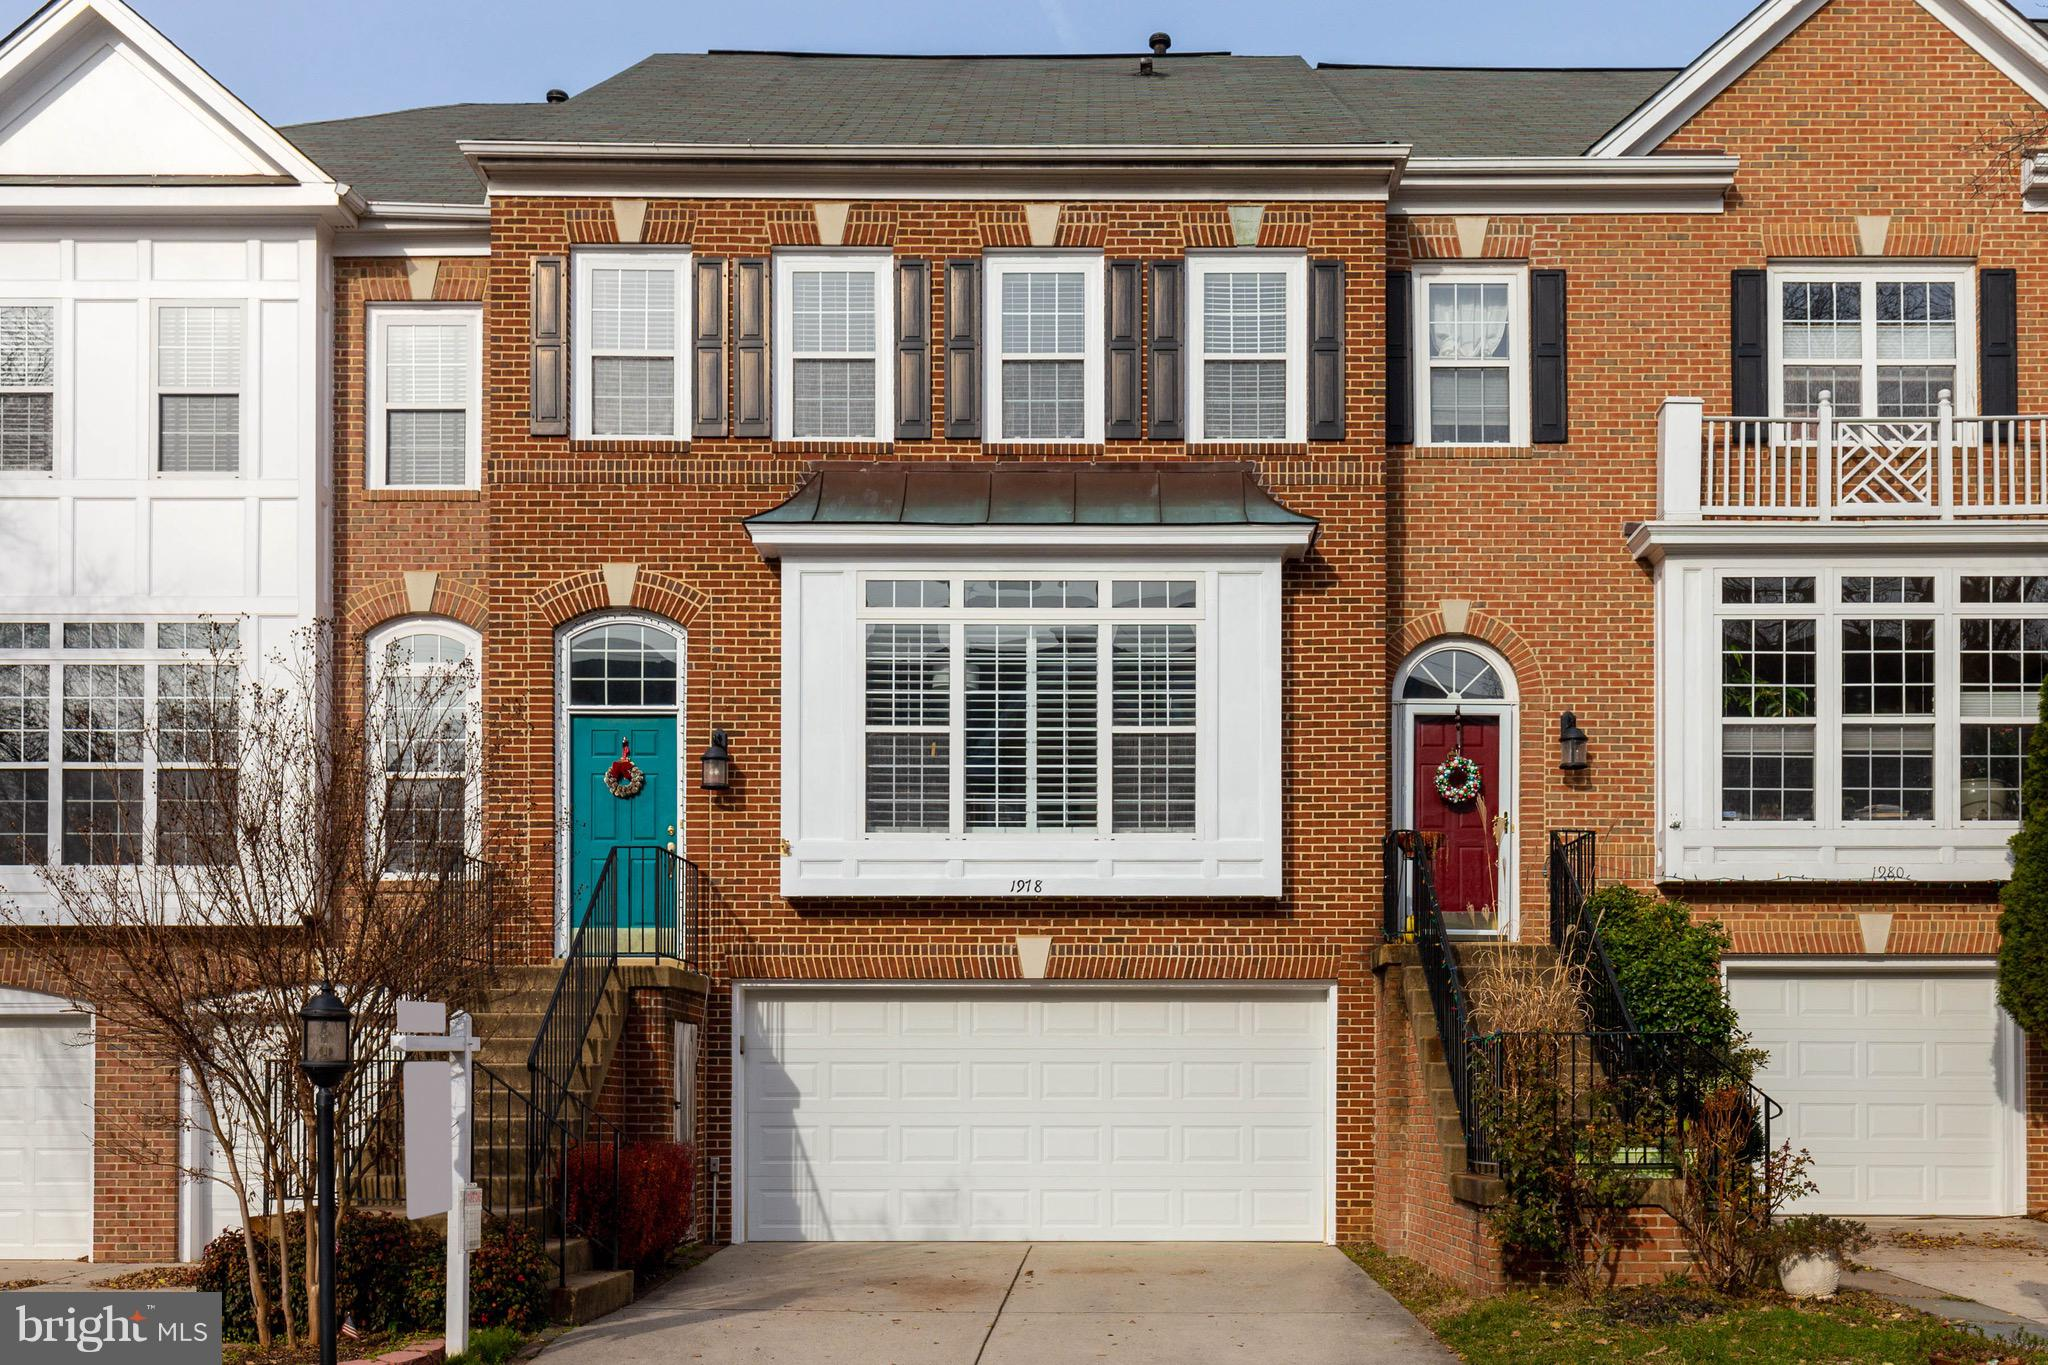 Fabulous, 4 bedroom, 2 car garage at the Reston Town Center.   Welcome to this light filled, spacious home.   Bump out extensions on all three levels make this home truly unique.   Wide planked, maple hardwood floors grace the main level, staircases and upper foyer.   The living room boasts custom bookcases.   Gourmet kitchen features stainless steel appliances, gas cooking, granite countertops.    breakfast bar and dining table space.   Cozy up by the fireplace in the family room, just off the kitchen.  Great Trex deck off the family room.   Large master bedroom with extension, perfect for sitting room, home office or exercise space.  Remodeled master bath with soaking tub and separate shower.   Vaulted ceilings in all three upper level bedrooms.   Upstairs laundry.  Fully finished basement with fourth bedroom and full bath.  Plenty room for entertainment.   Access to stone patio.   This home is complete.  Move in, relax and enjoy!!